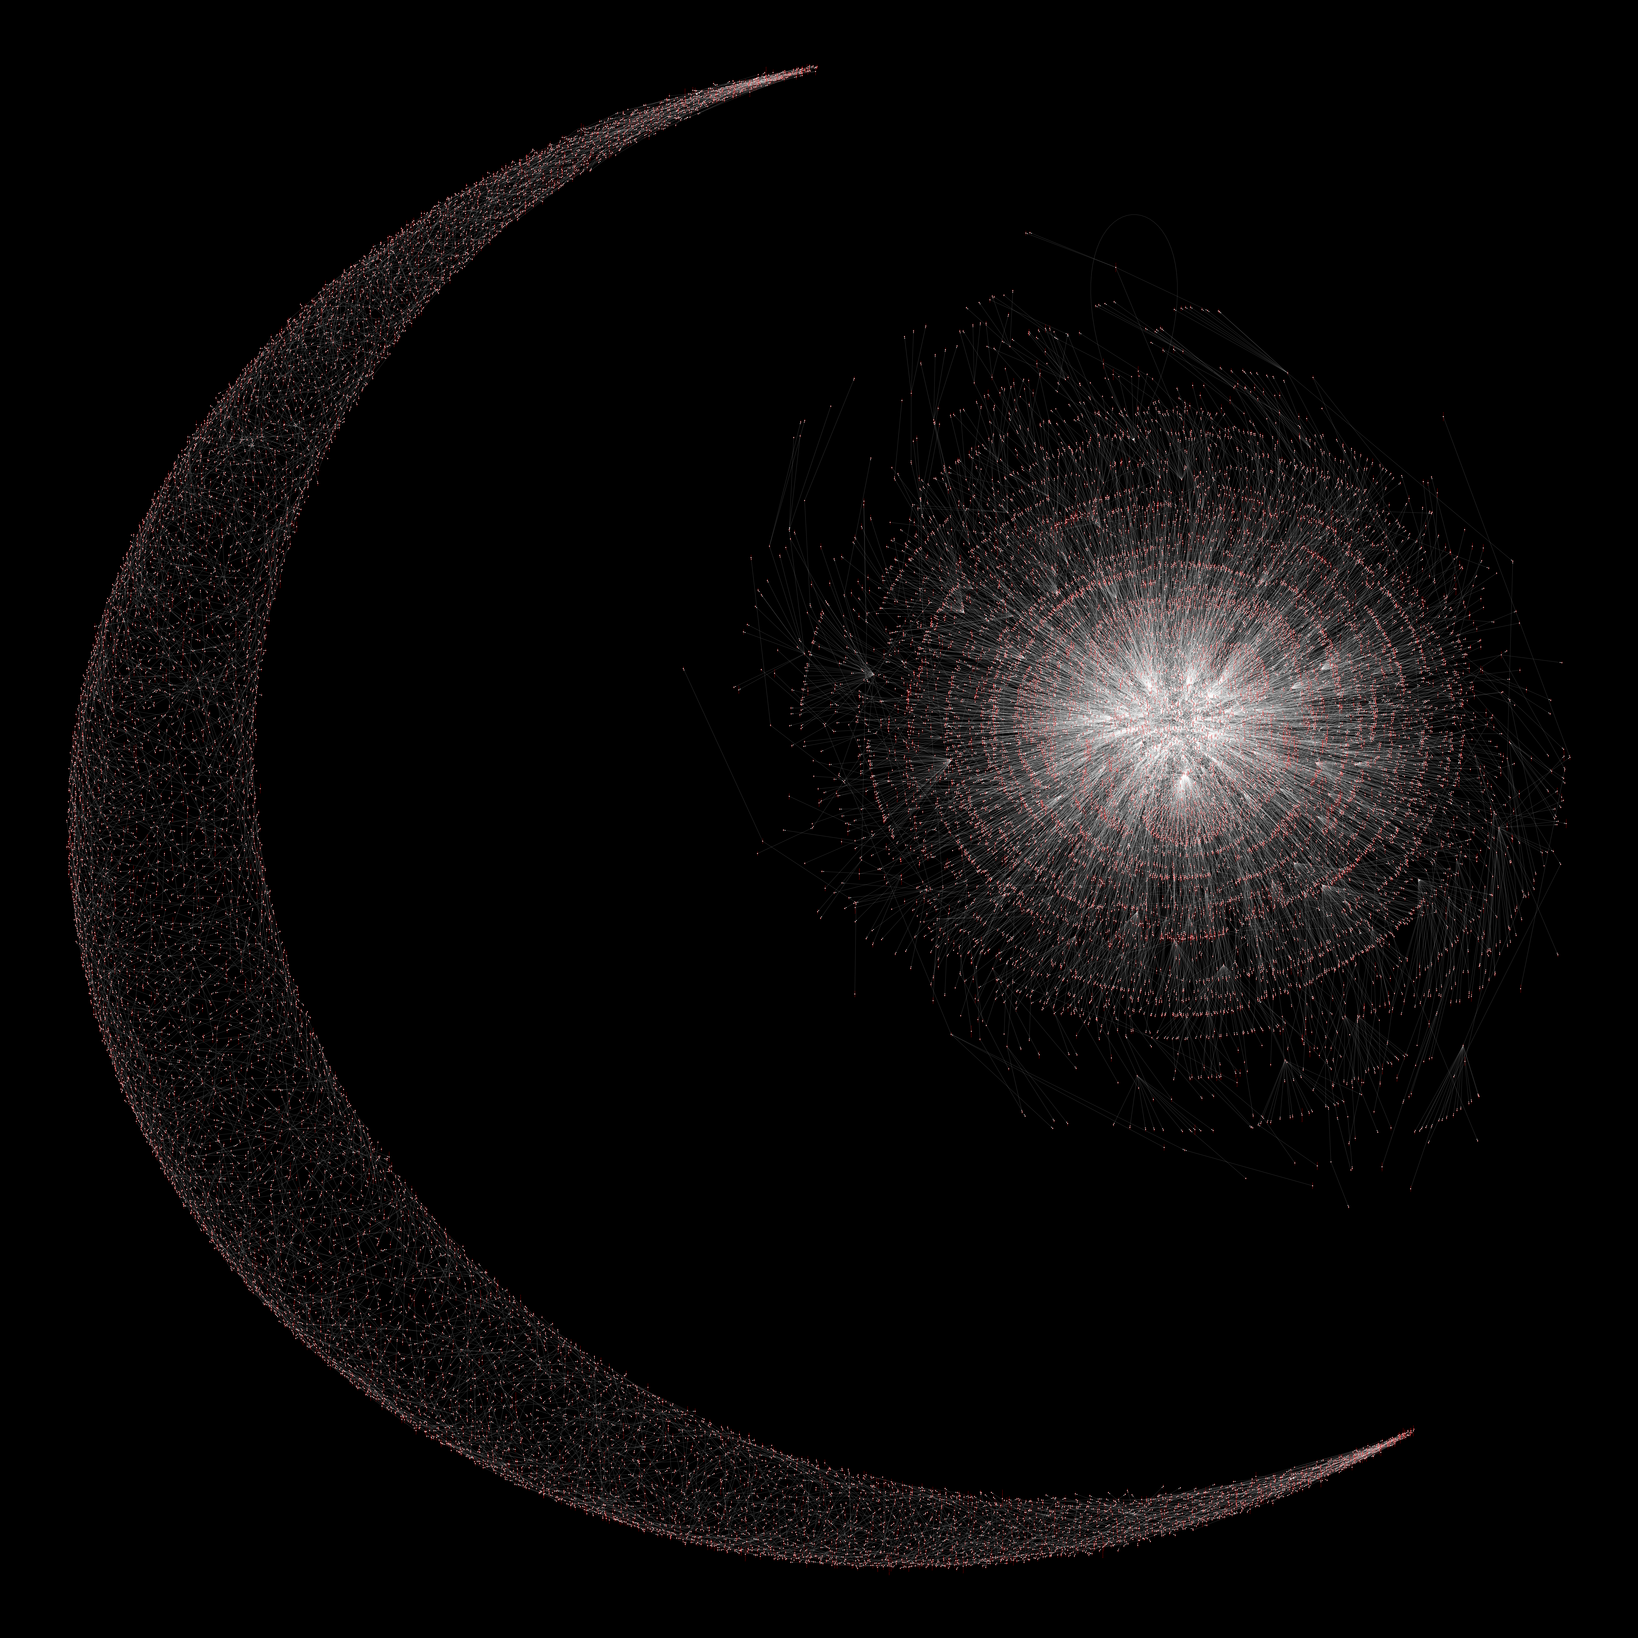 Star and crescent formed by Kamada-Kawai on 20,000 names